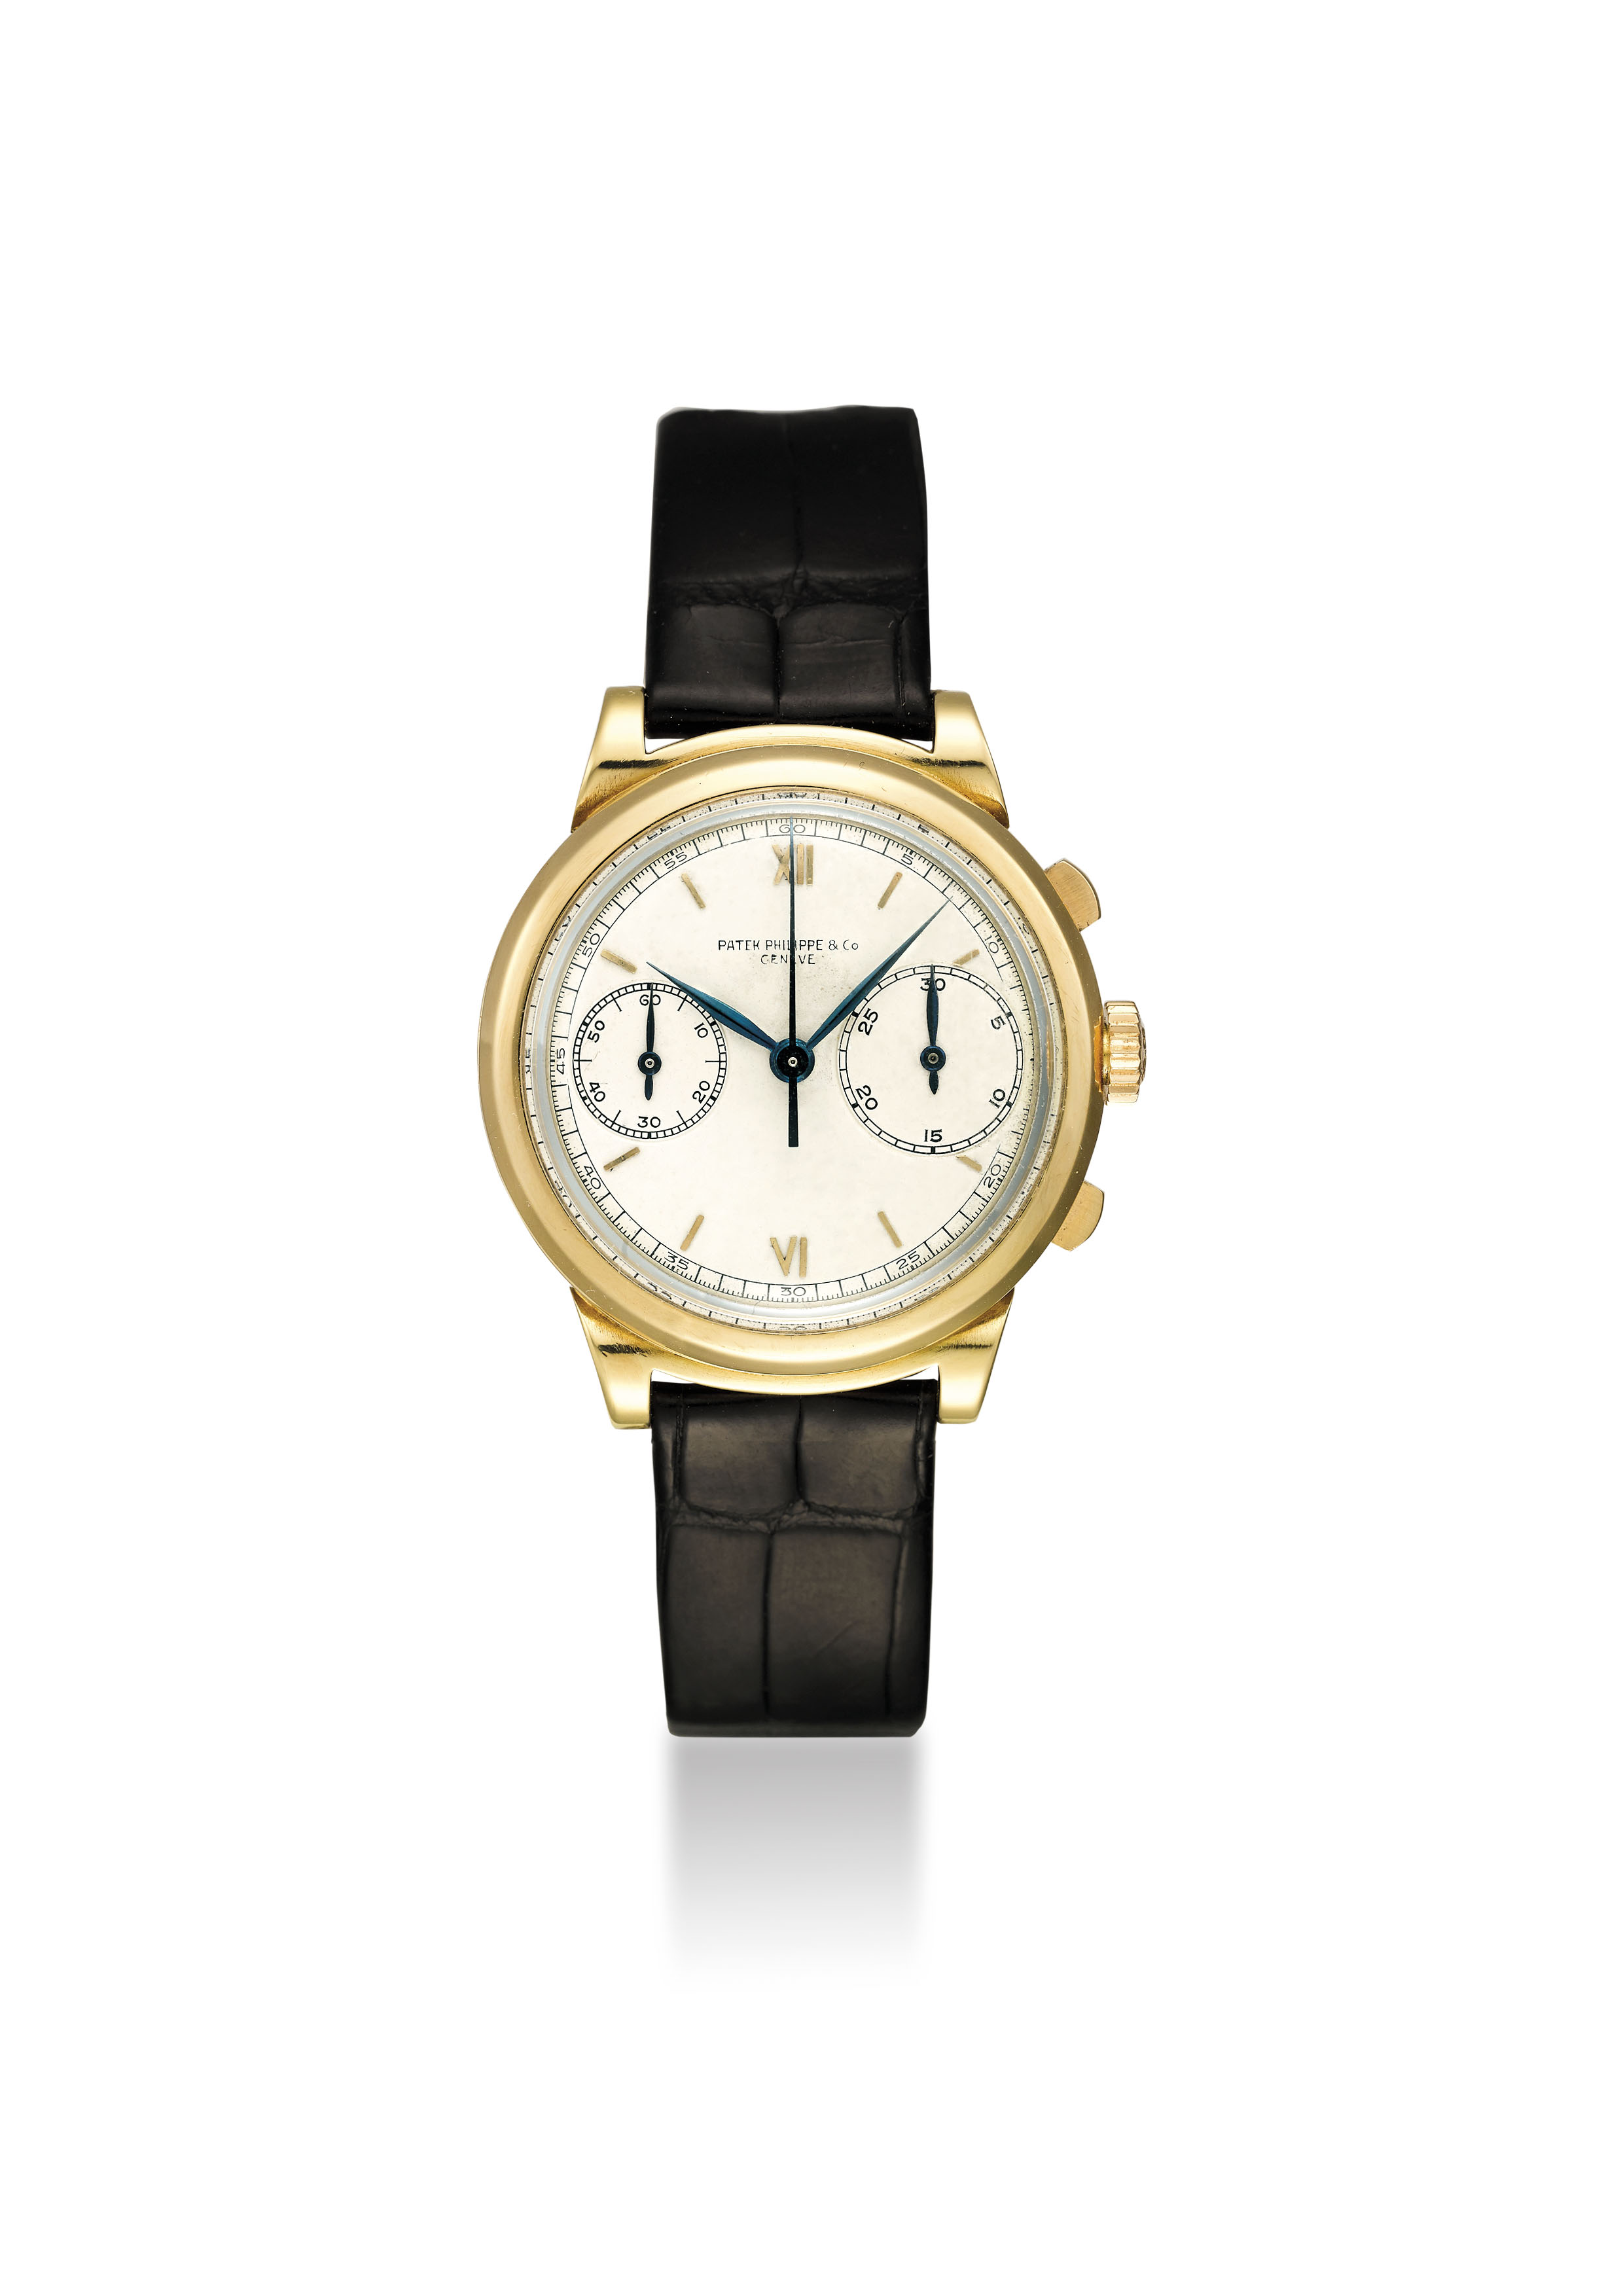 """PATEK PHILIPPE. AN EXTREMELY FINE AND LARGE, HIGHLY IMPORTANT AND PROBABLY UNIQUE 18K GOLD """"PROTOTYPE"""" CHRONOGRAPH WRISTWATCH WITH UNIQUELY CONSTRUCTED PATEK PHILIPPE CASE AND UNIQUE DIAL WITH OVERSIZED 30-MINUTE REGISTER"""